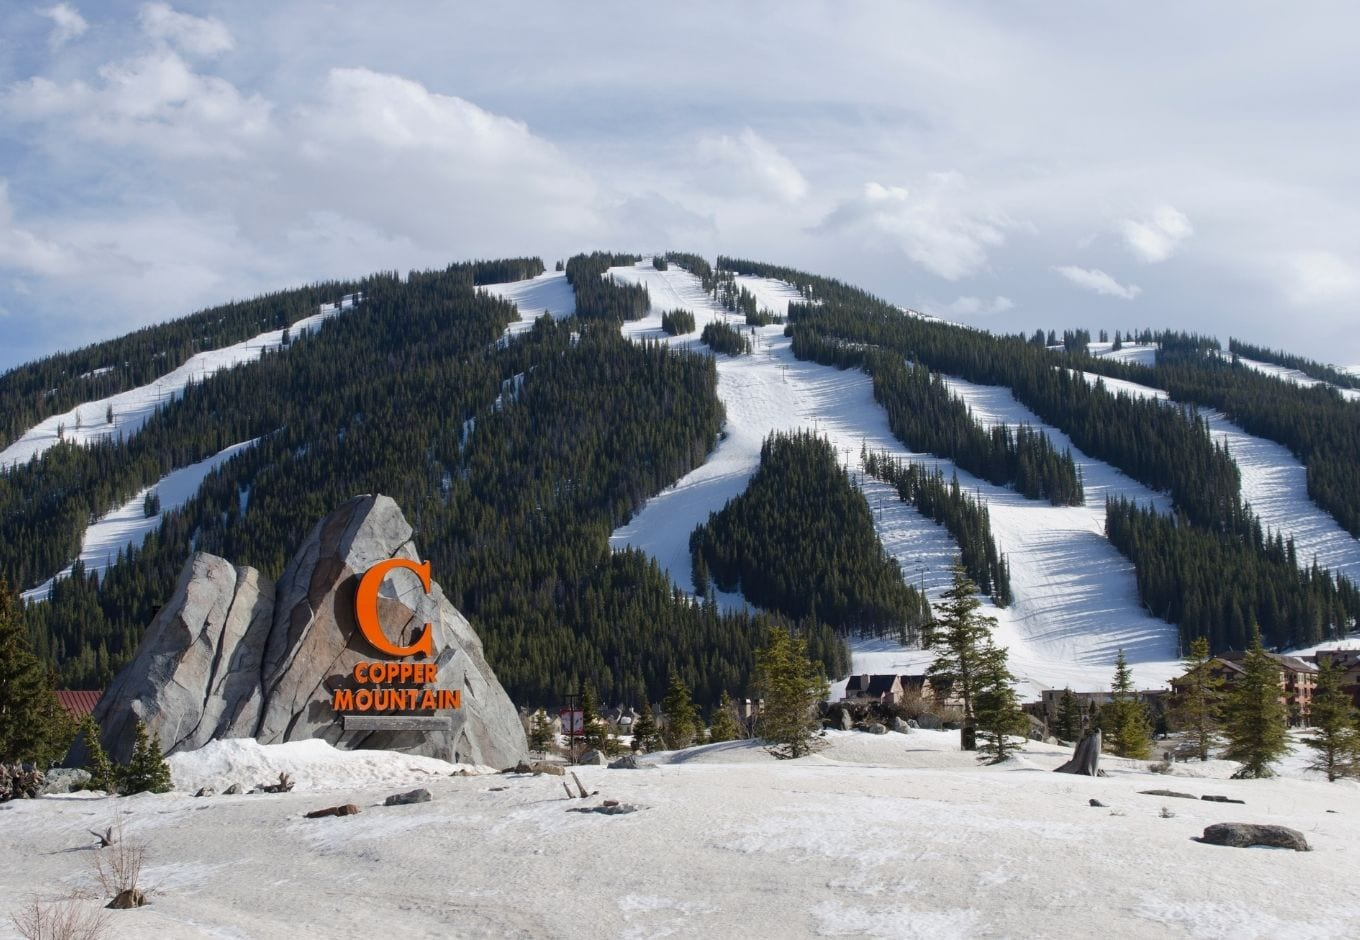 Entrance of the Copper Mountain Ski Resort, in Colorado.